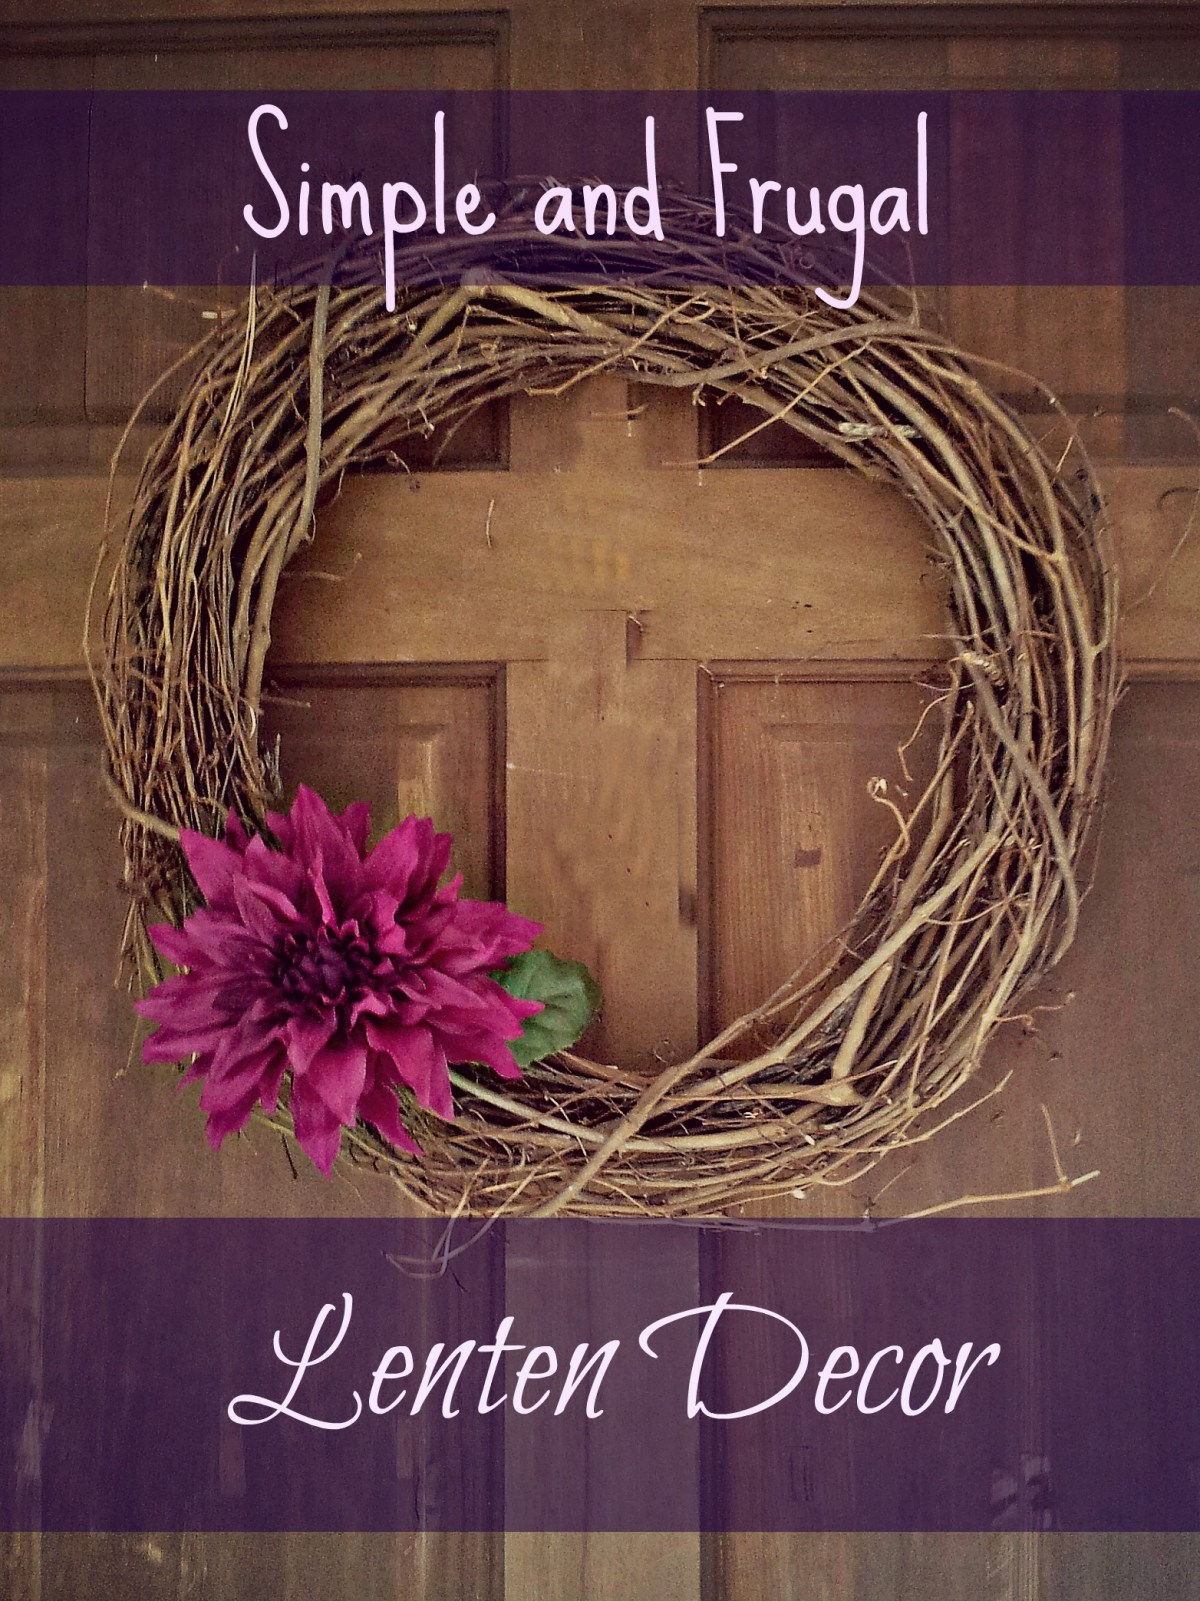 {SQT} Simple, Frugal Lenten Decor, Tofu, and Learning as I Go